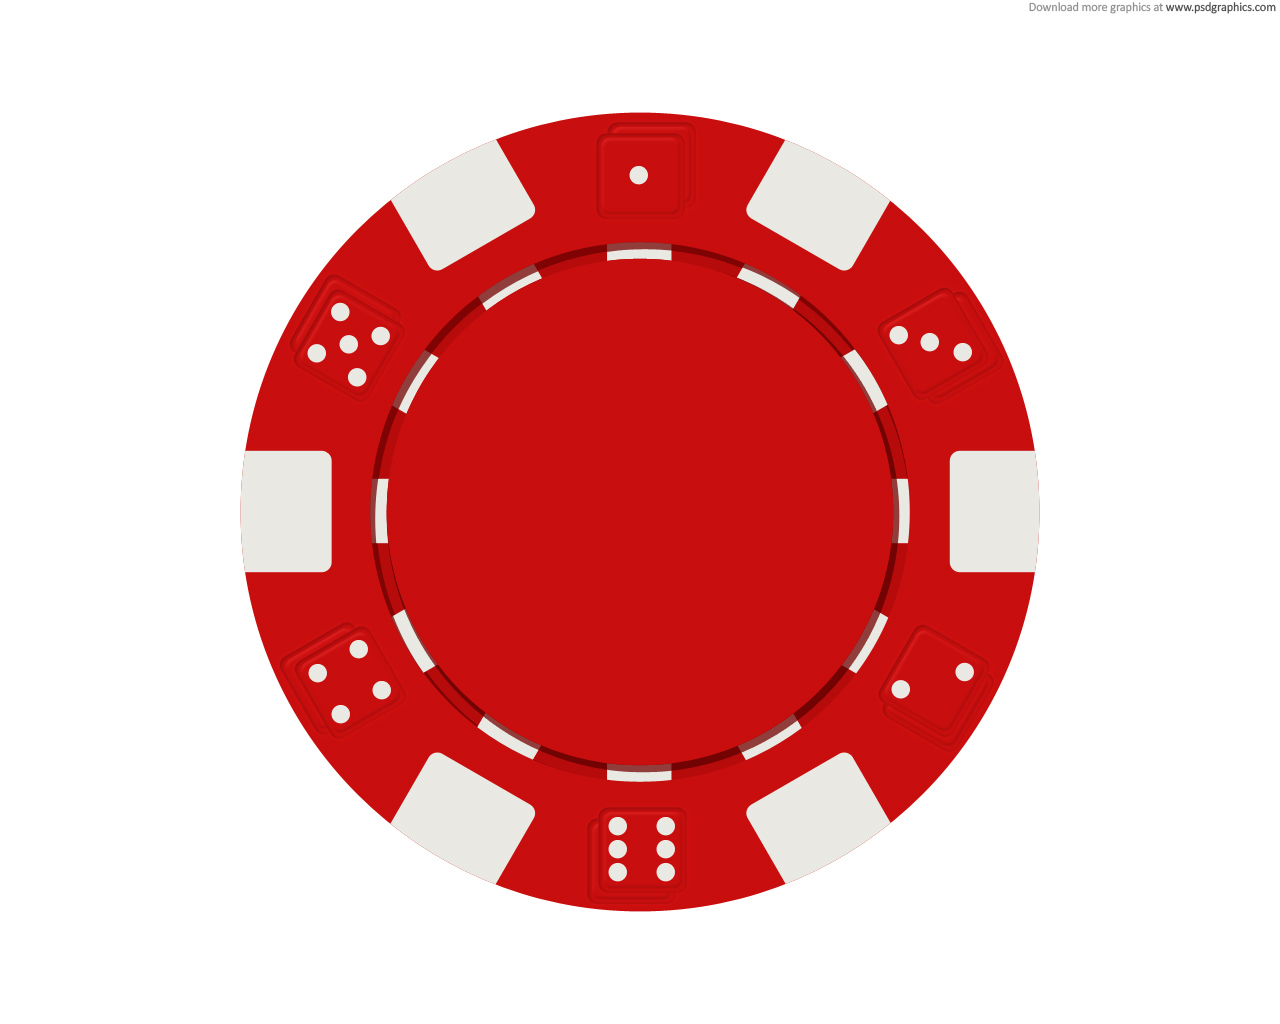 red poker chip icon